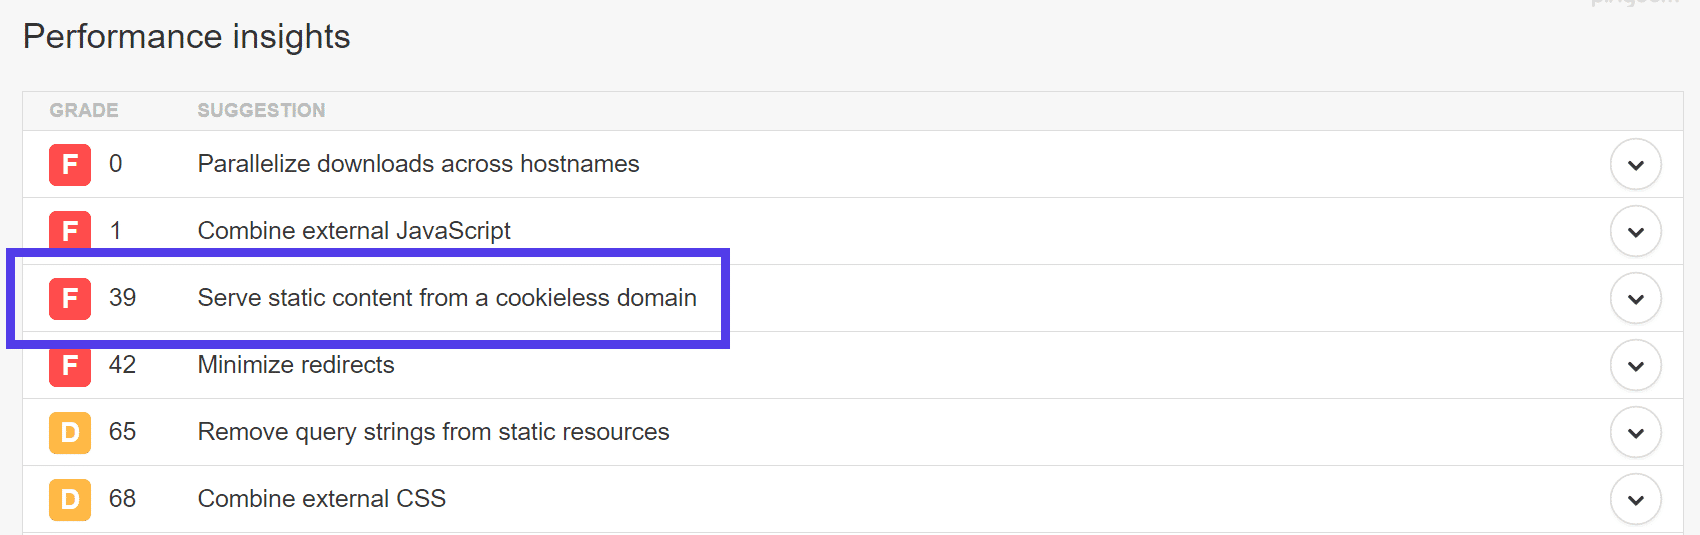 Serve static content from a cookieless domain warning